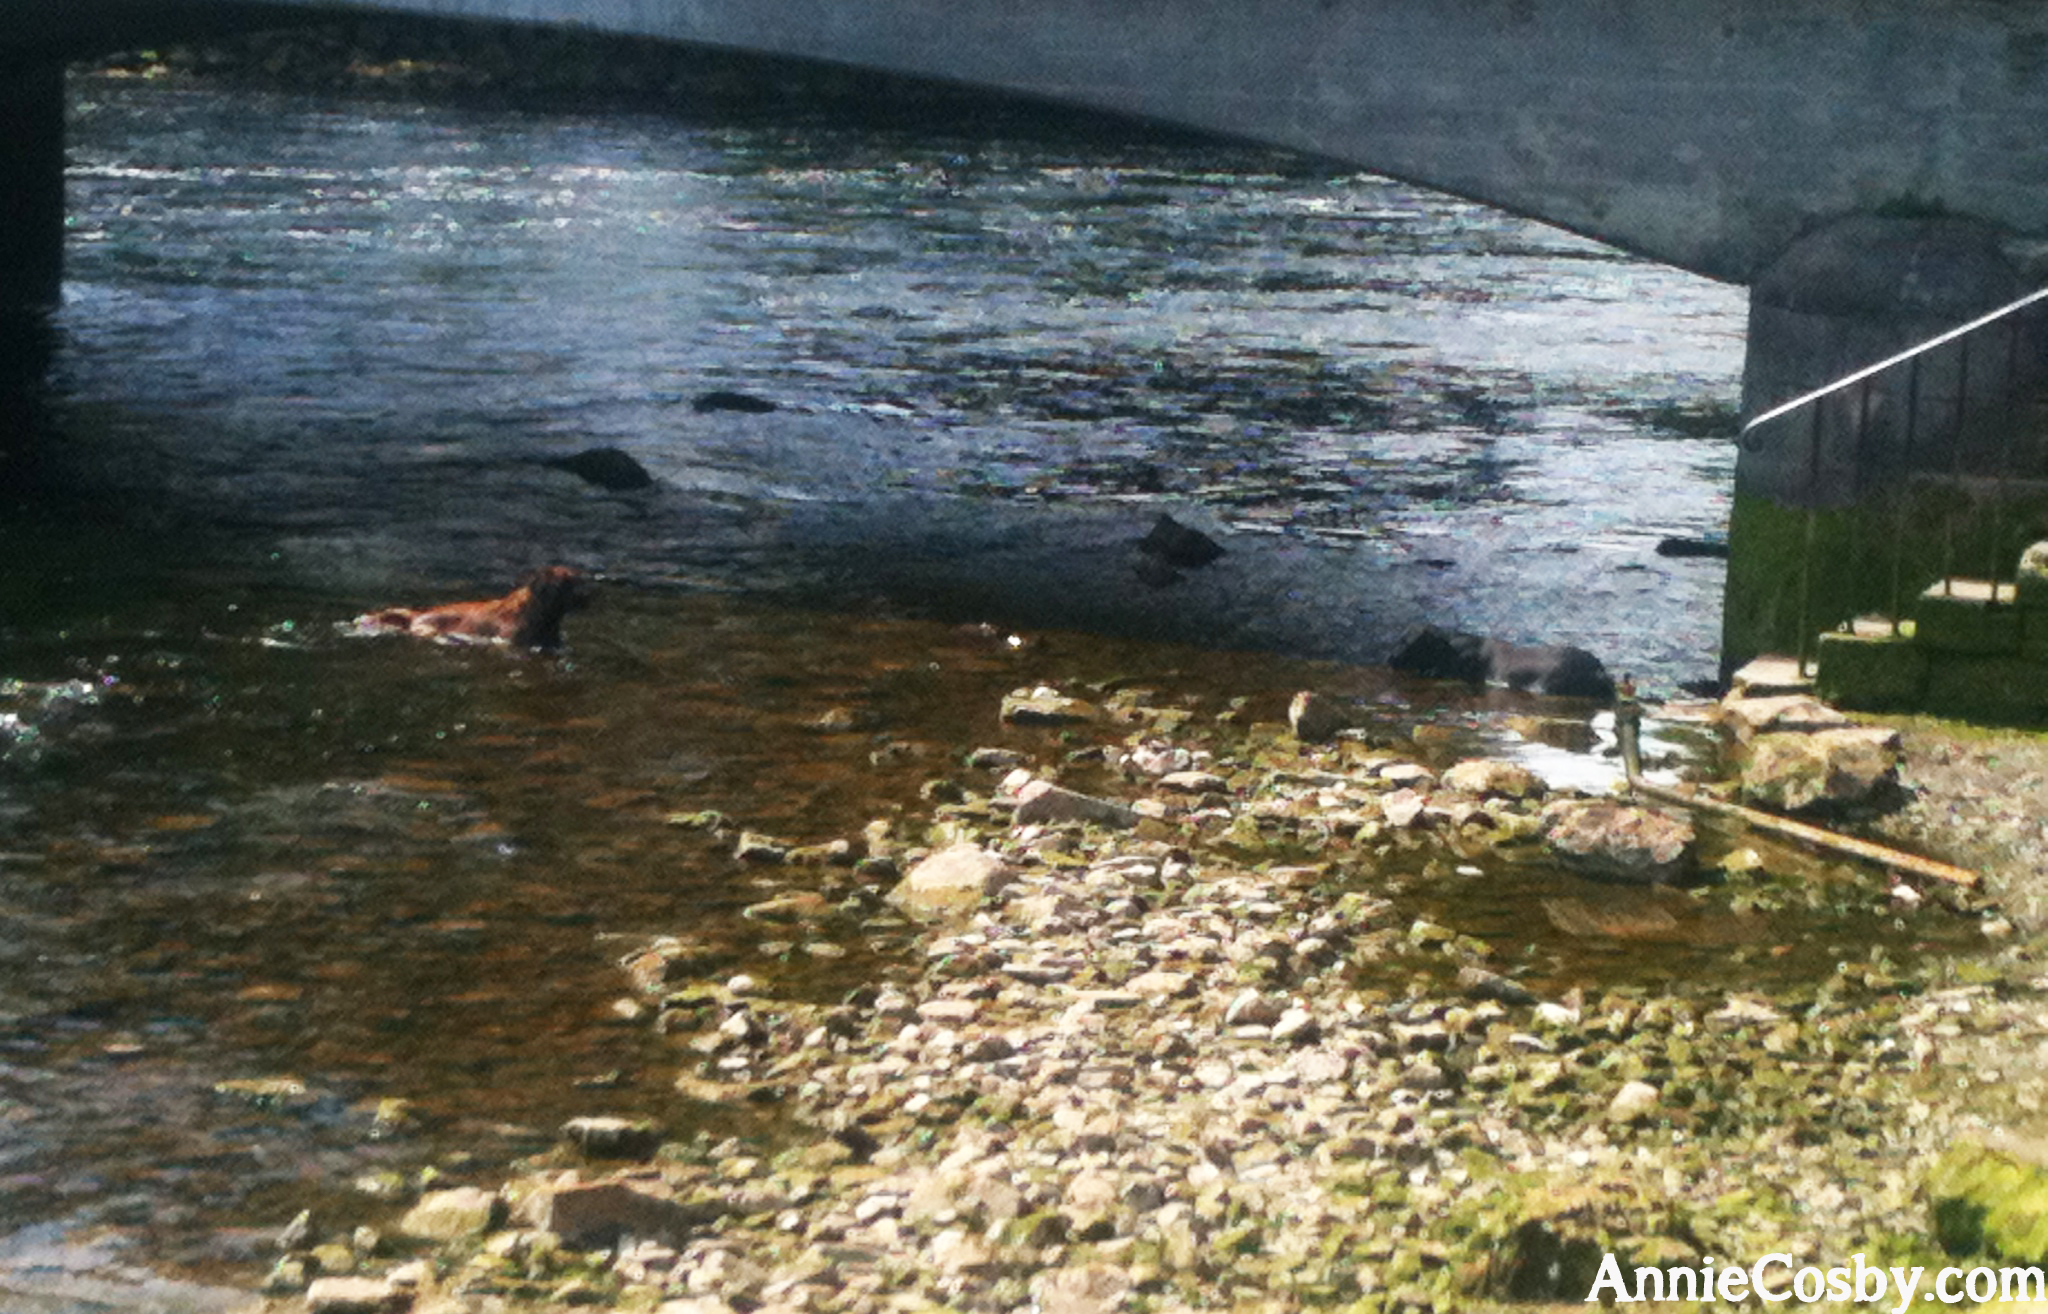 Dogs in Galway river